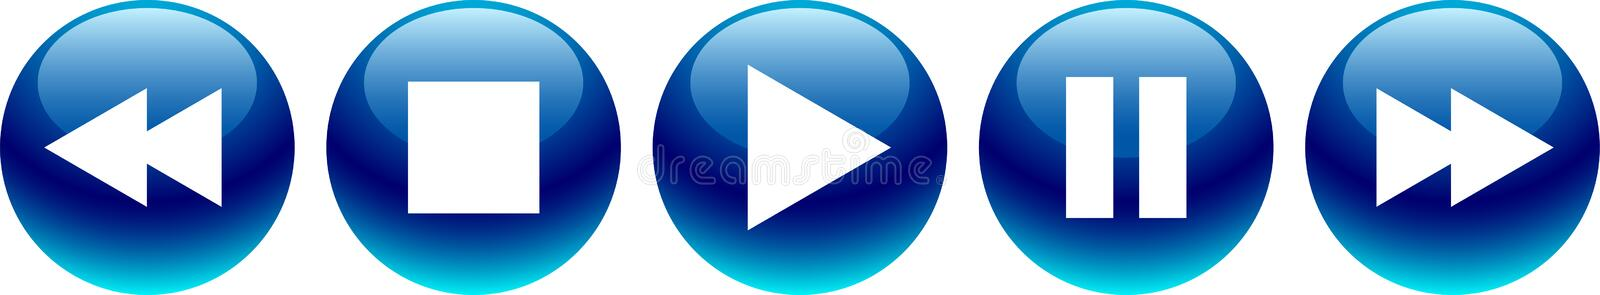 Audio video player buttons blue royalty free illustration